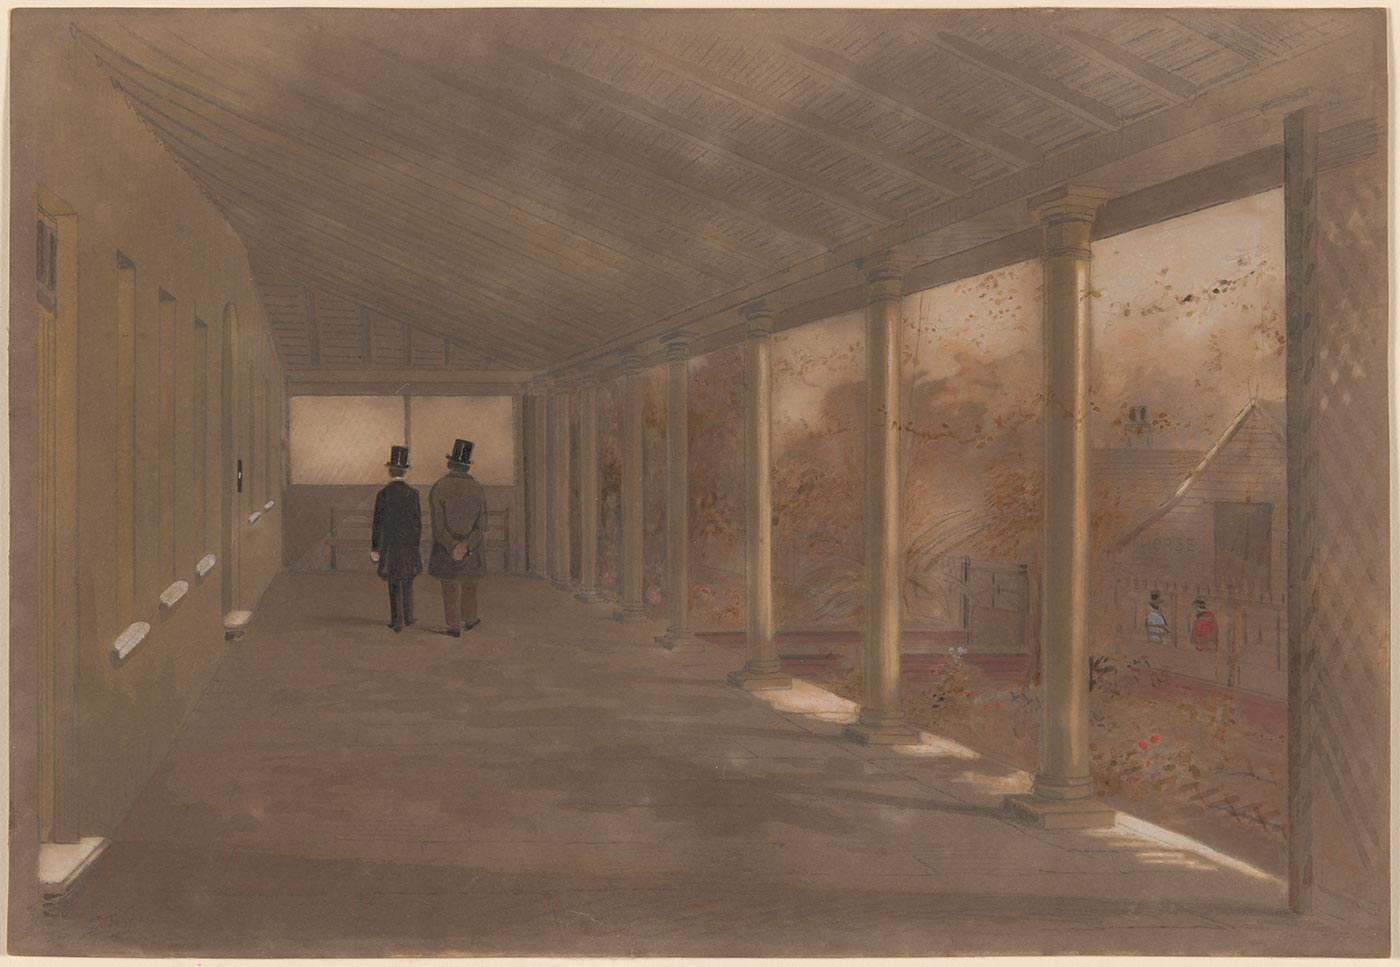 A watercolour painting in greys, browns and white with small sections of red and blue depicting a verandah with pillars on one side a wall on the other. Walking along the verandah are two people wearing top hats. Handwritten in pencil in the bottom left hand corner is 'S.T.G.'. - click to view larger image